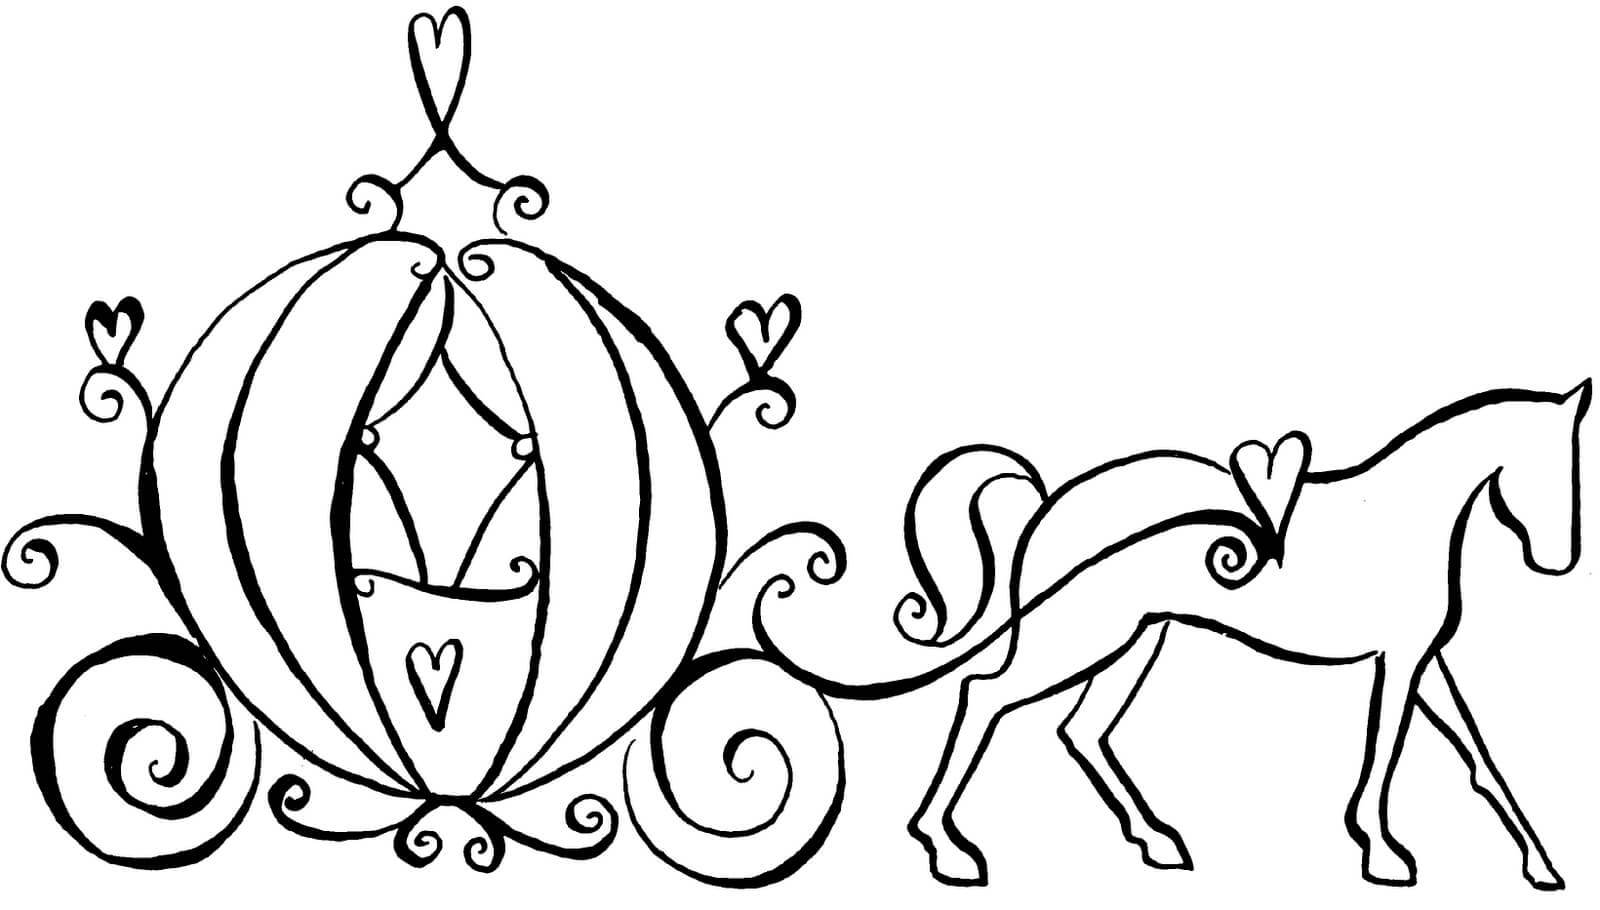 Cinderella carriage black and white clipart 6 » Clipart Portal.